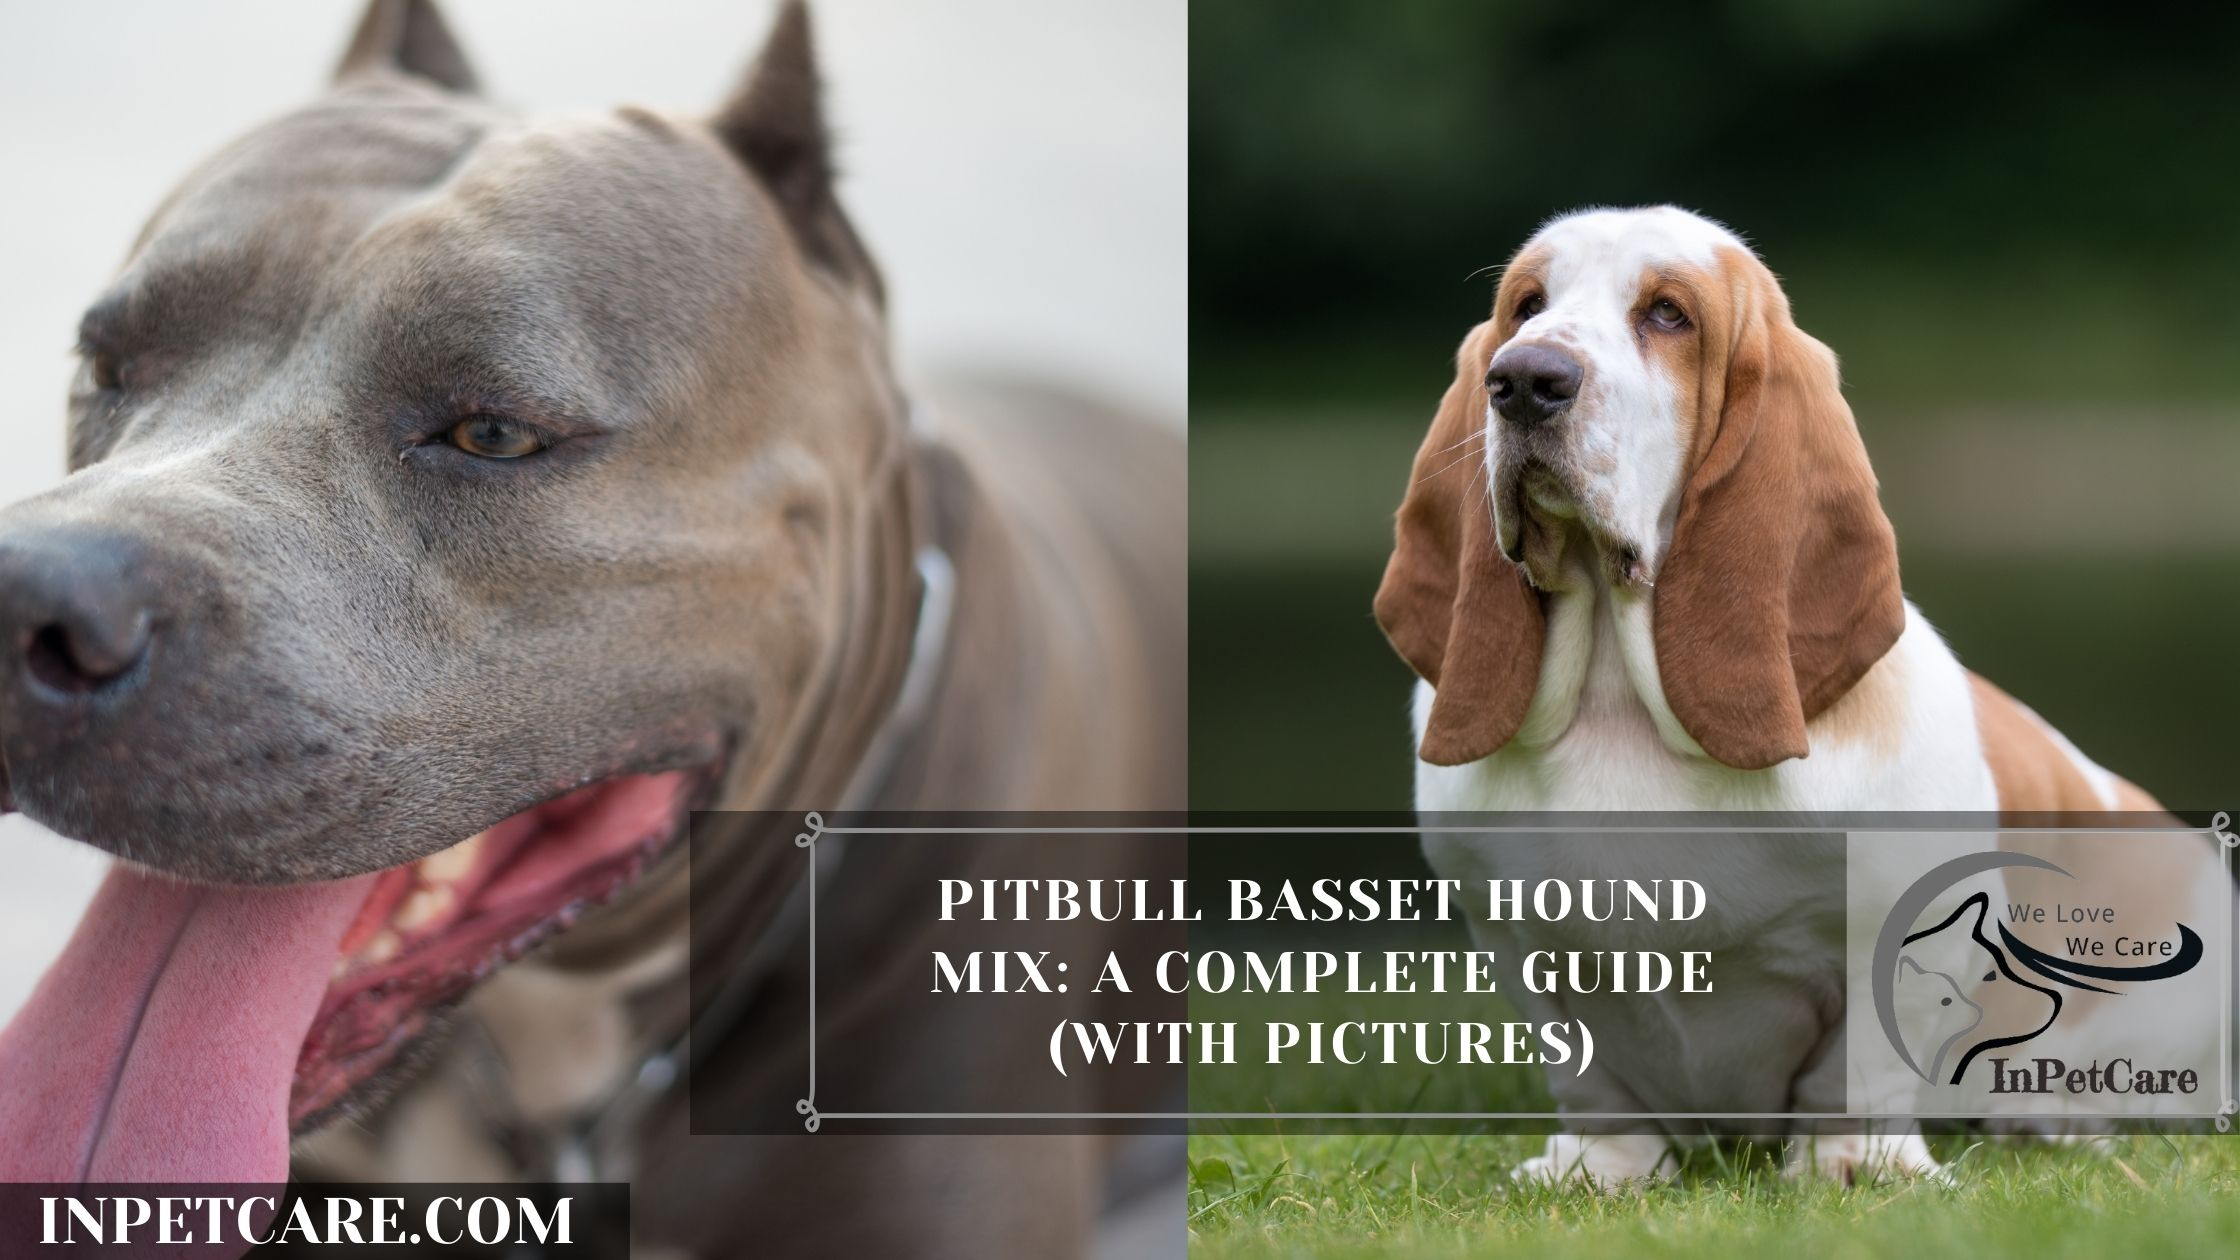 Pitbull Basset Hound Mix: A Complete Guide (With Pictures)